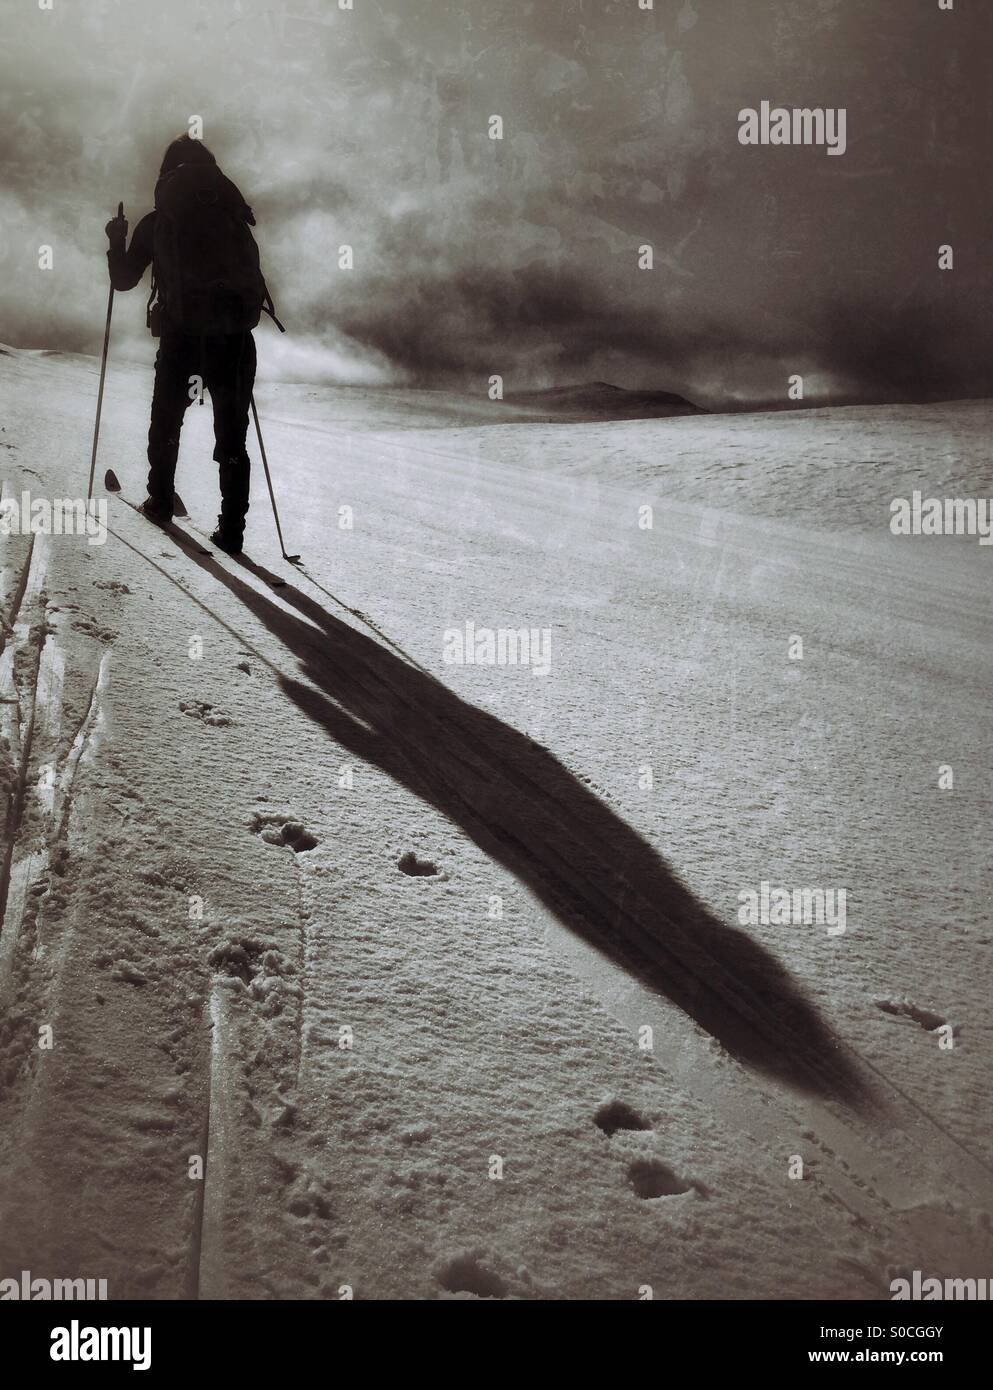 Cross-Country skiing over Hardangervidda, Norway, casting a long shadow in the snow. - Stock Image